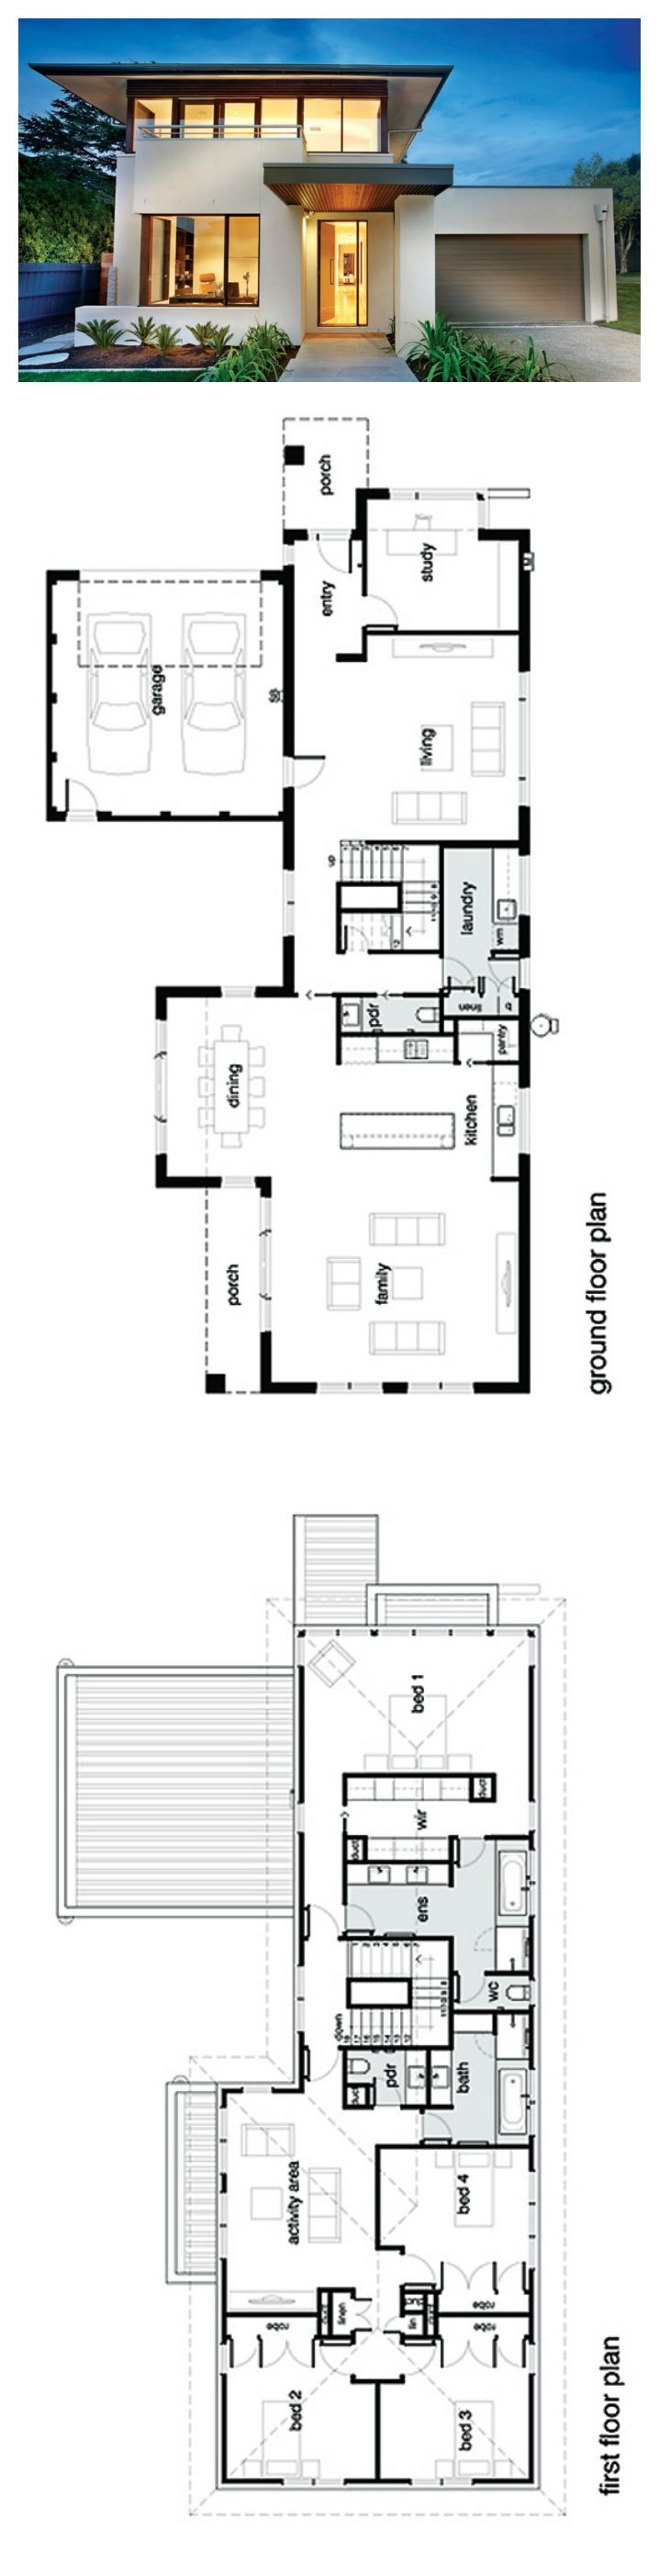 The 25 best ideas about modern house plans on pinterest for New house floor plans